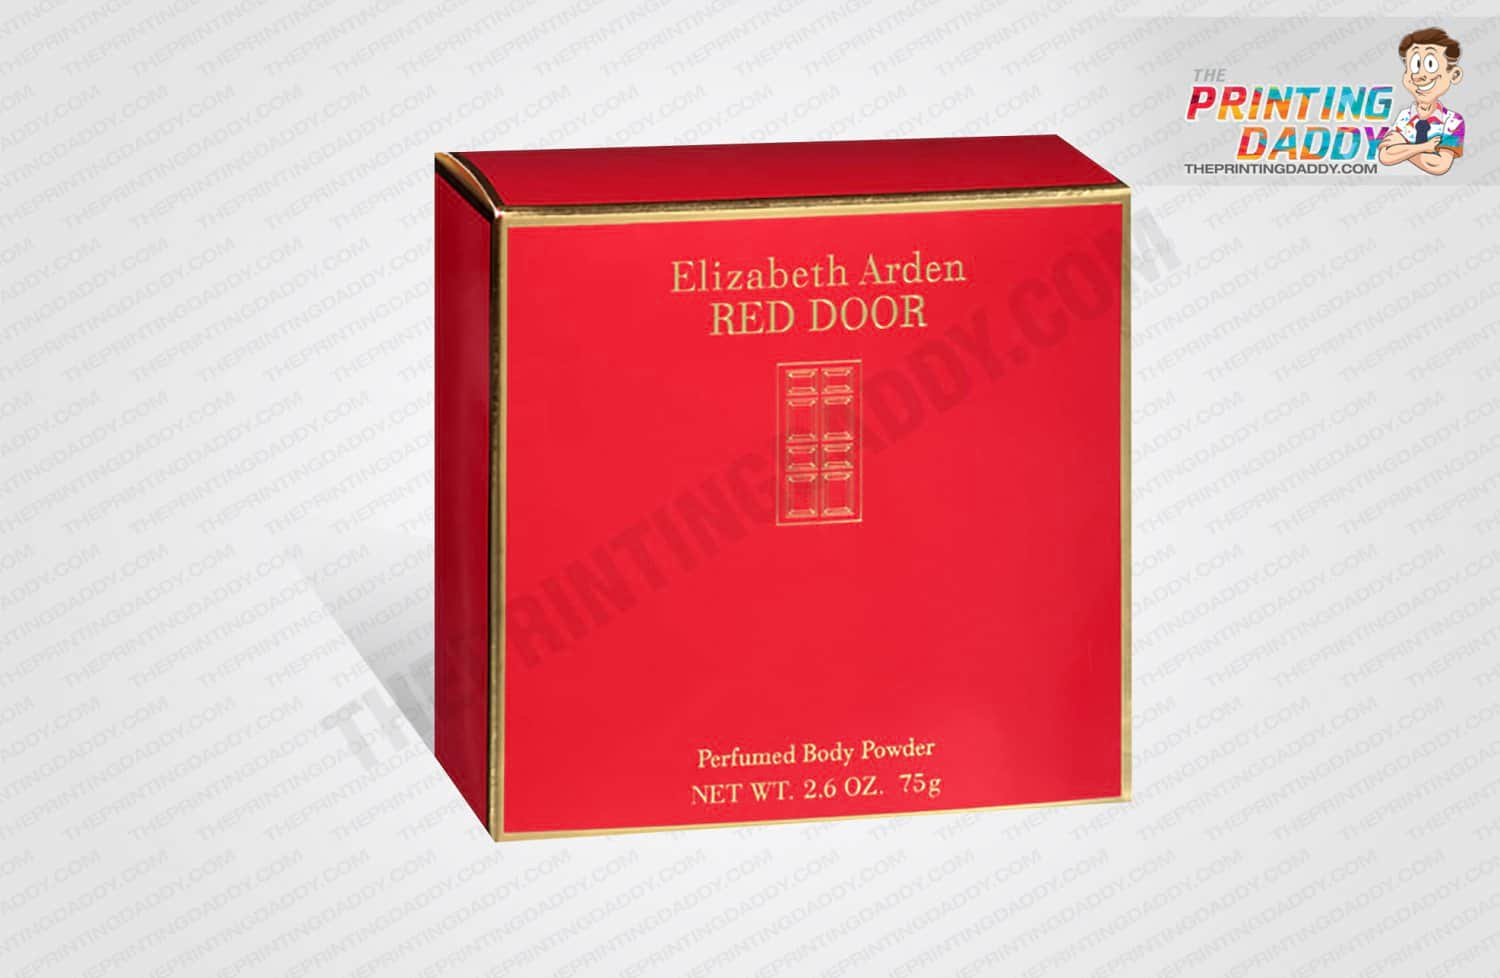 Collapsible Red Body Powder Box The Printing Daddy